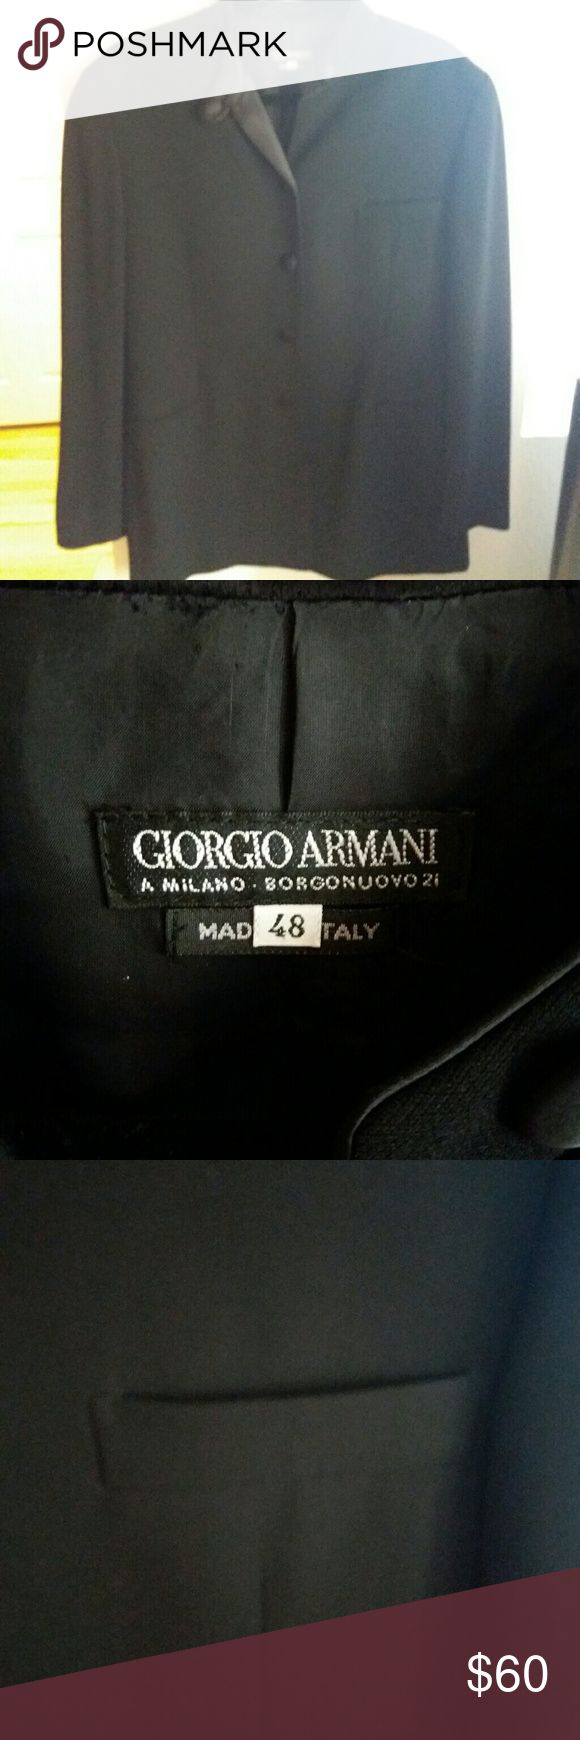 Ladies black button front Giorgio Armani jacket. Size 48. Made in Italy. Matching cloth buttons, bottom one missing. Front pocket, deep dark black. Measures 34.5 inches from top to bottom, 20.5 inches from underarm to underarm. Long dressy jacket, would be great fancy or with jeans. Giorgio Armani Jackets & Coats Blazers